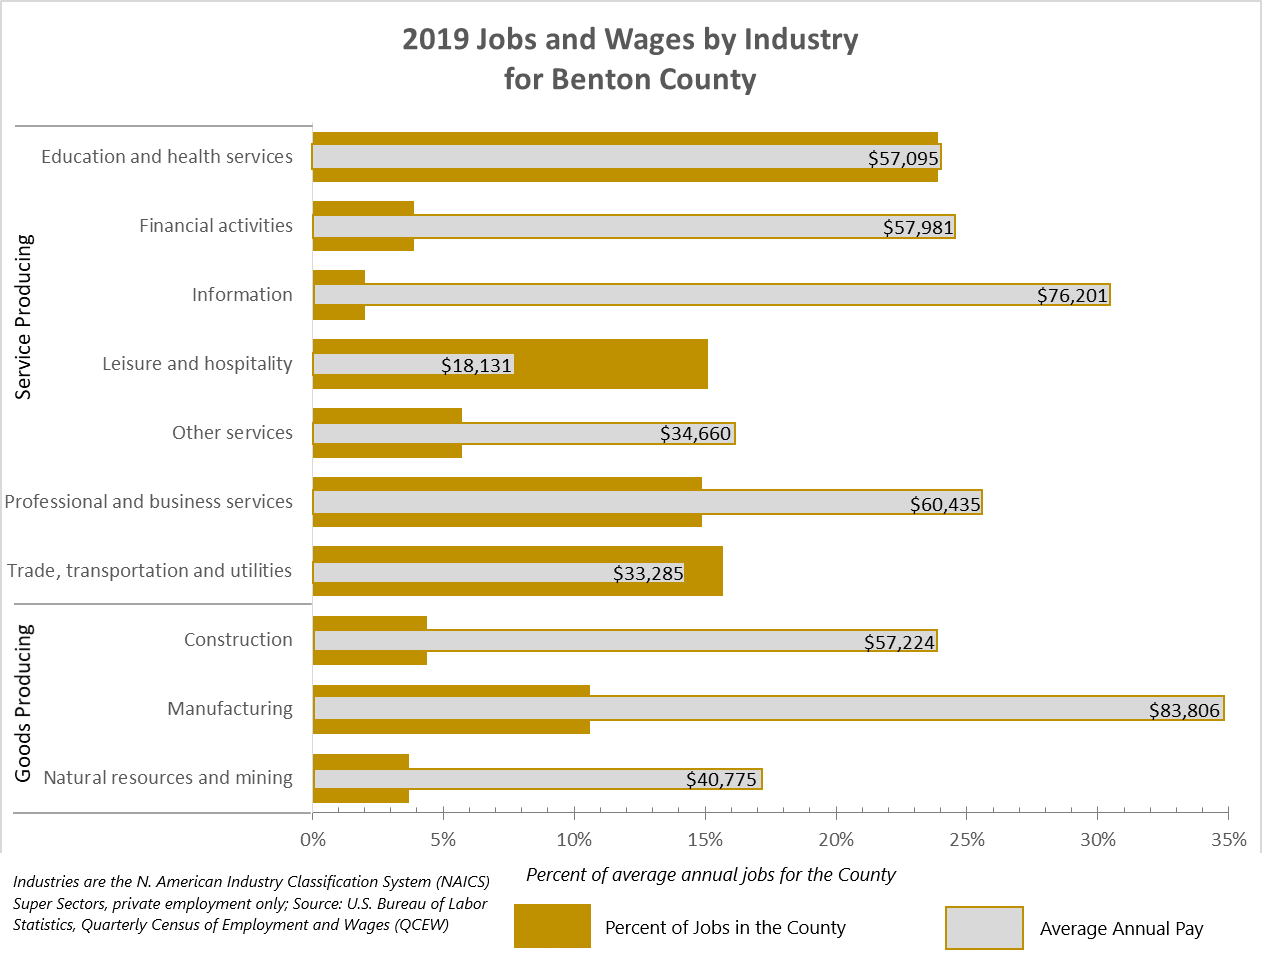 2019 Jobs and Wages by Industry for Benton County